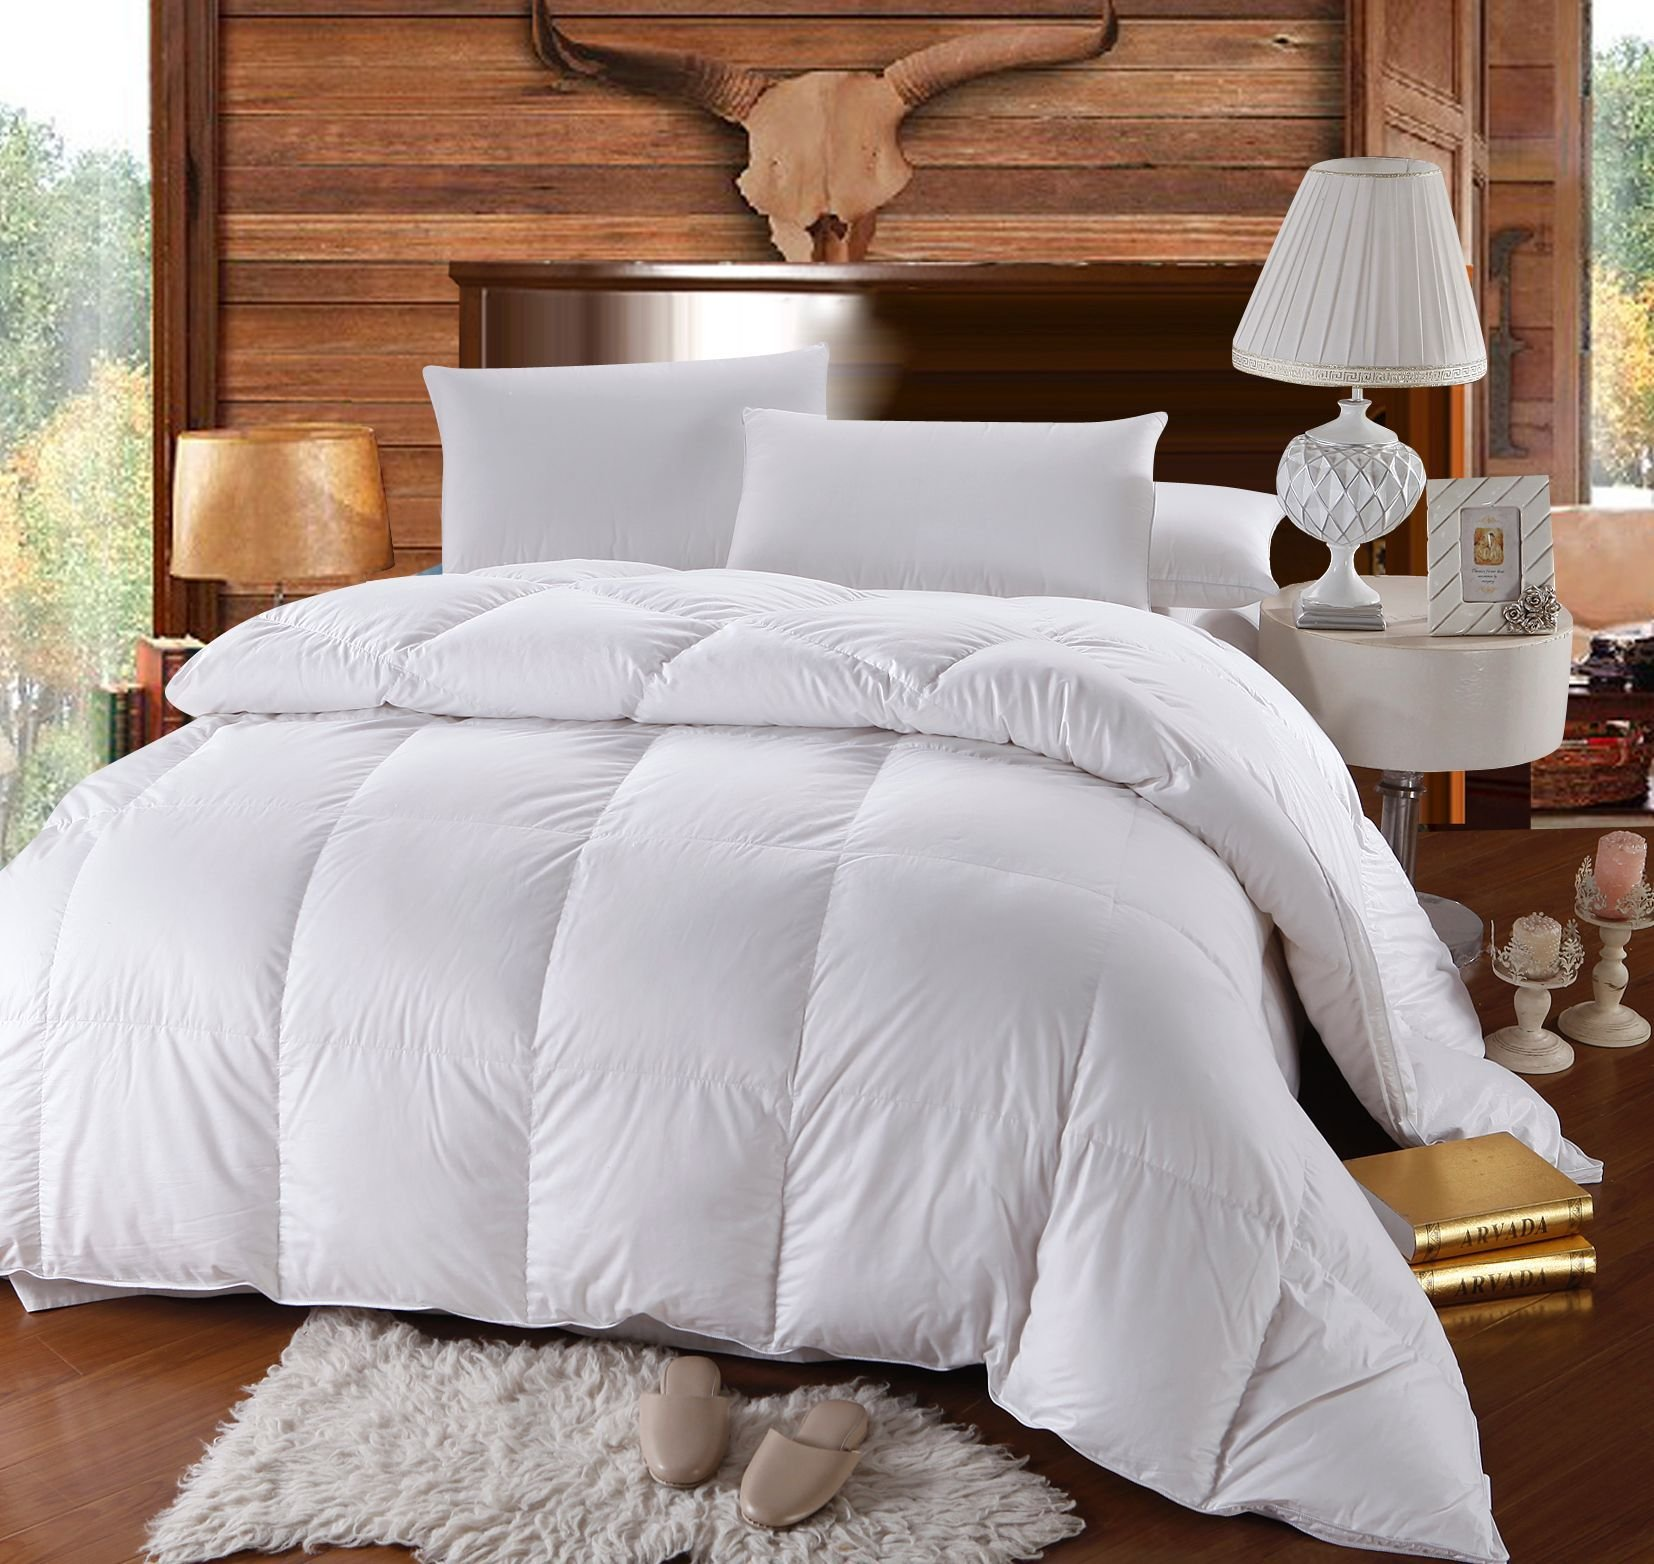 Full / Queen Size Down-Comforter 500-Thread-Count Down Comforter 100 percent Cotton 500 TC - 750FP - 50Oz - Solid White